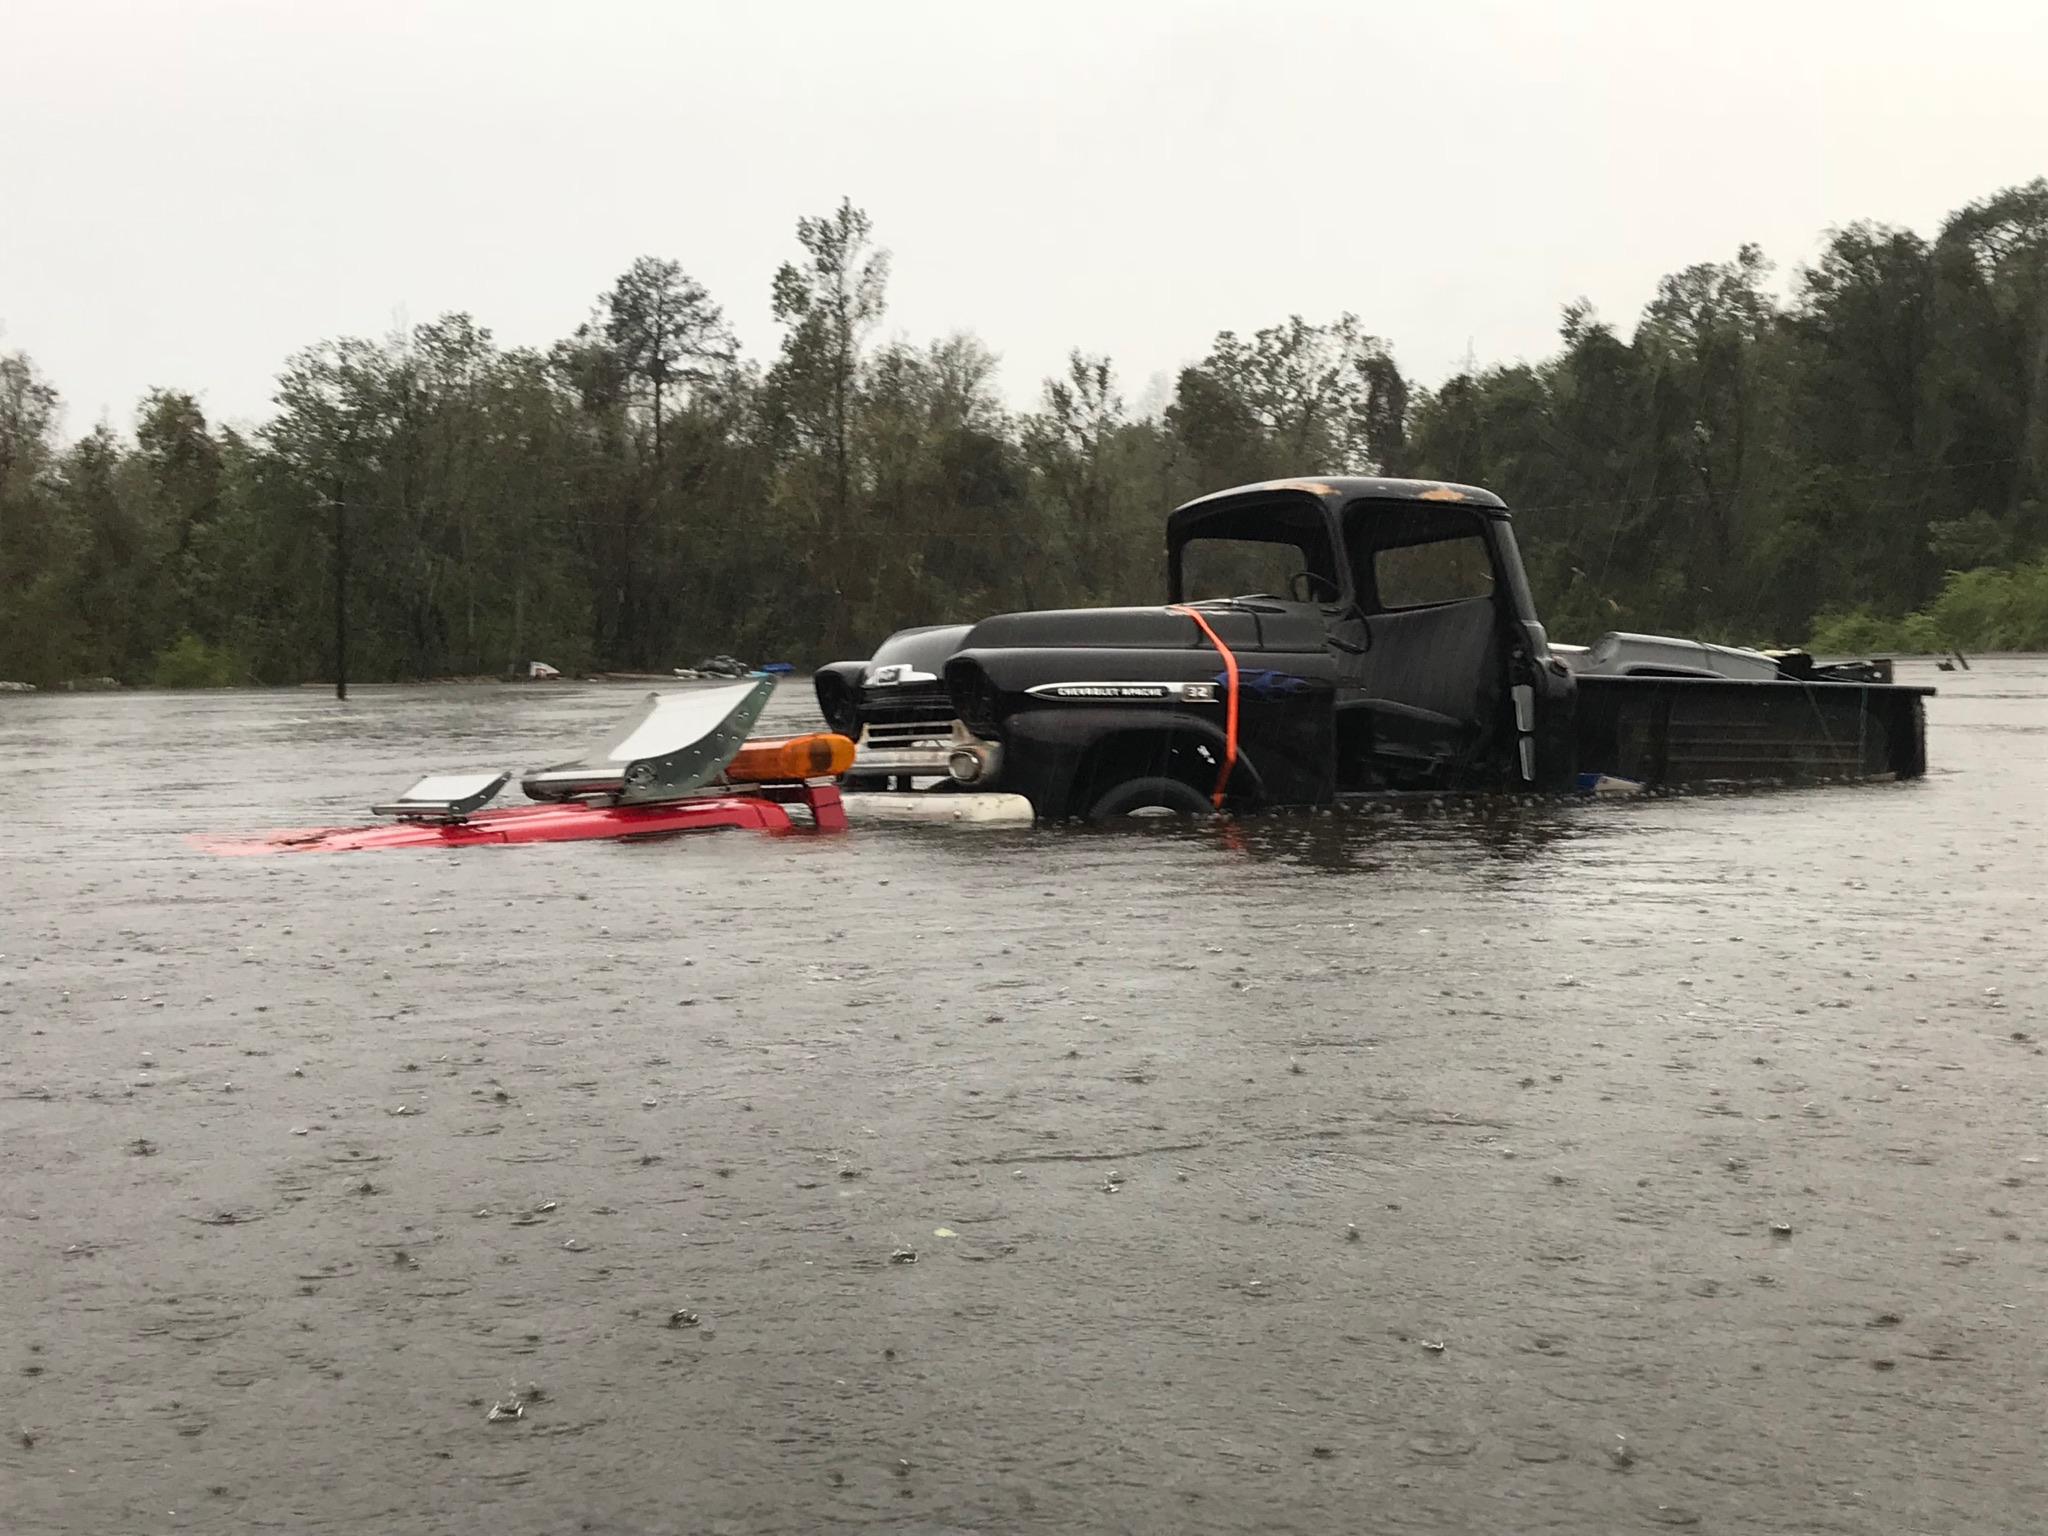 <div class='meta'><div class='origin-logo' data-origin='WTVD'></div><span class='caption-text' data-credit='ABC11 Eyewitness - Kaycie Burns'>A tow truck is stranded in the floodwaters of Jacksonville, N.C.</span></div>